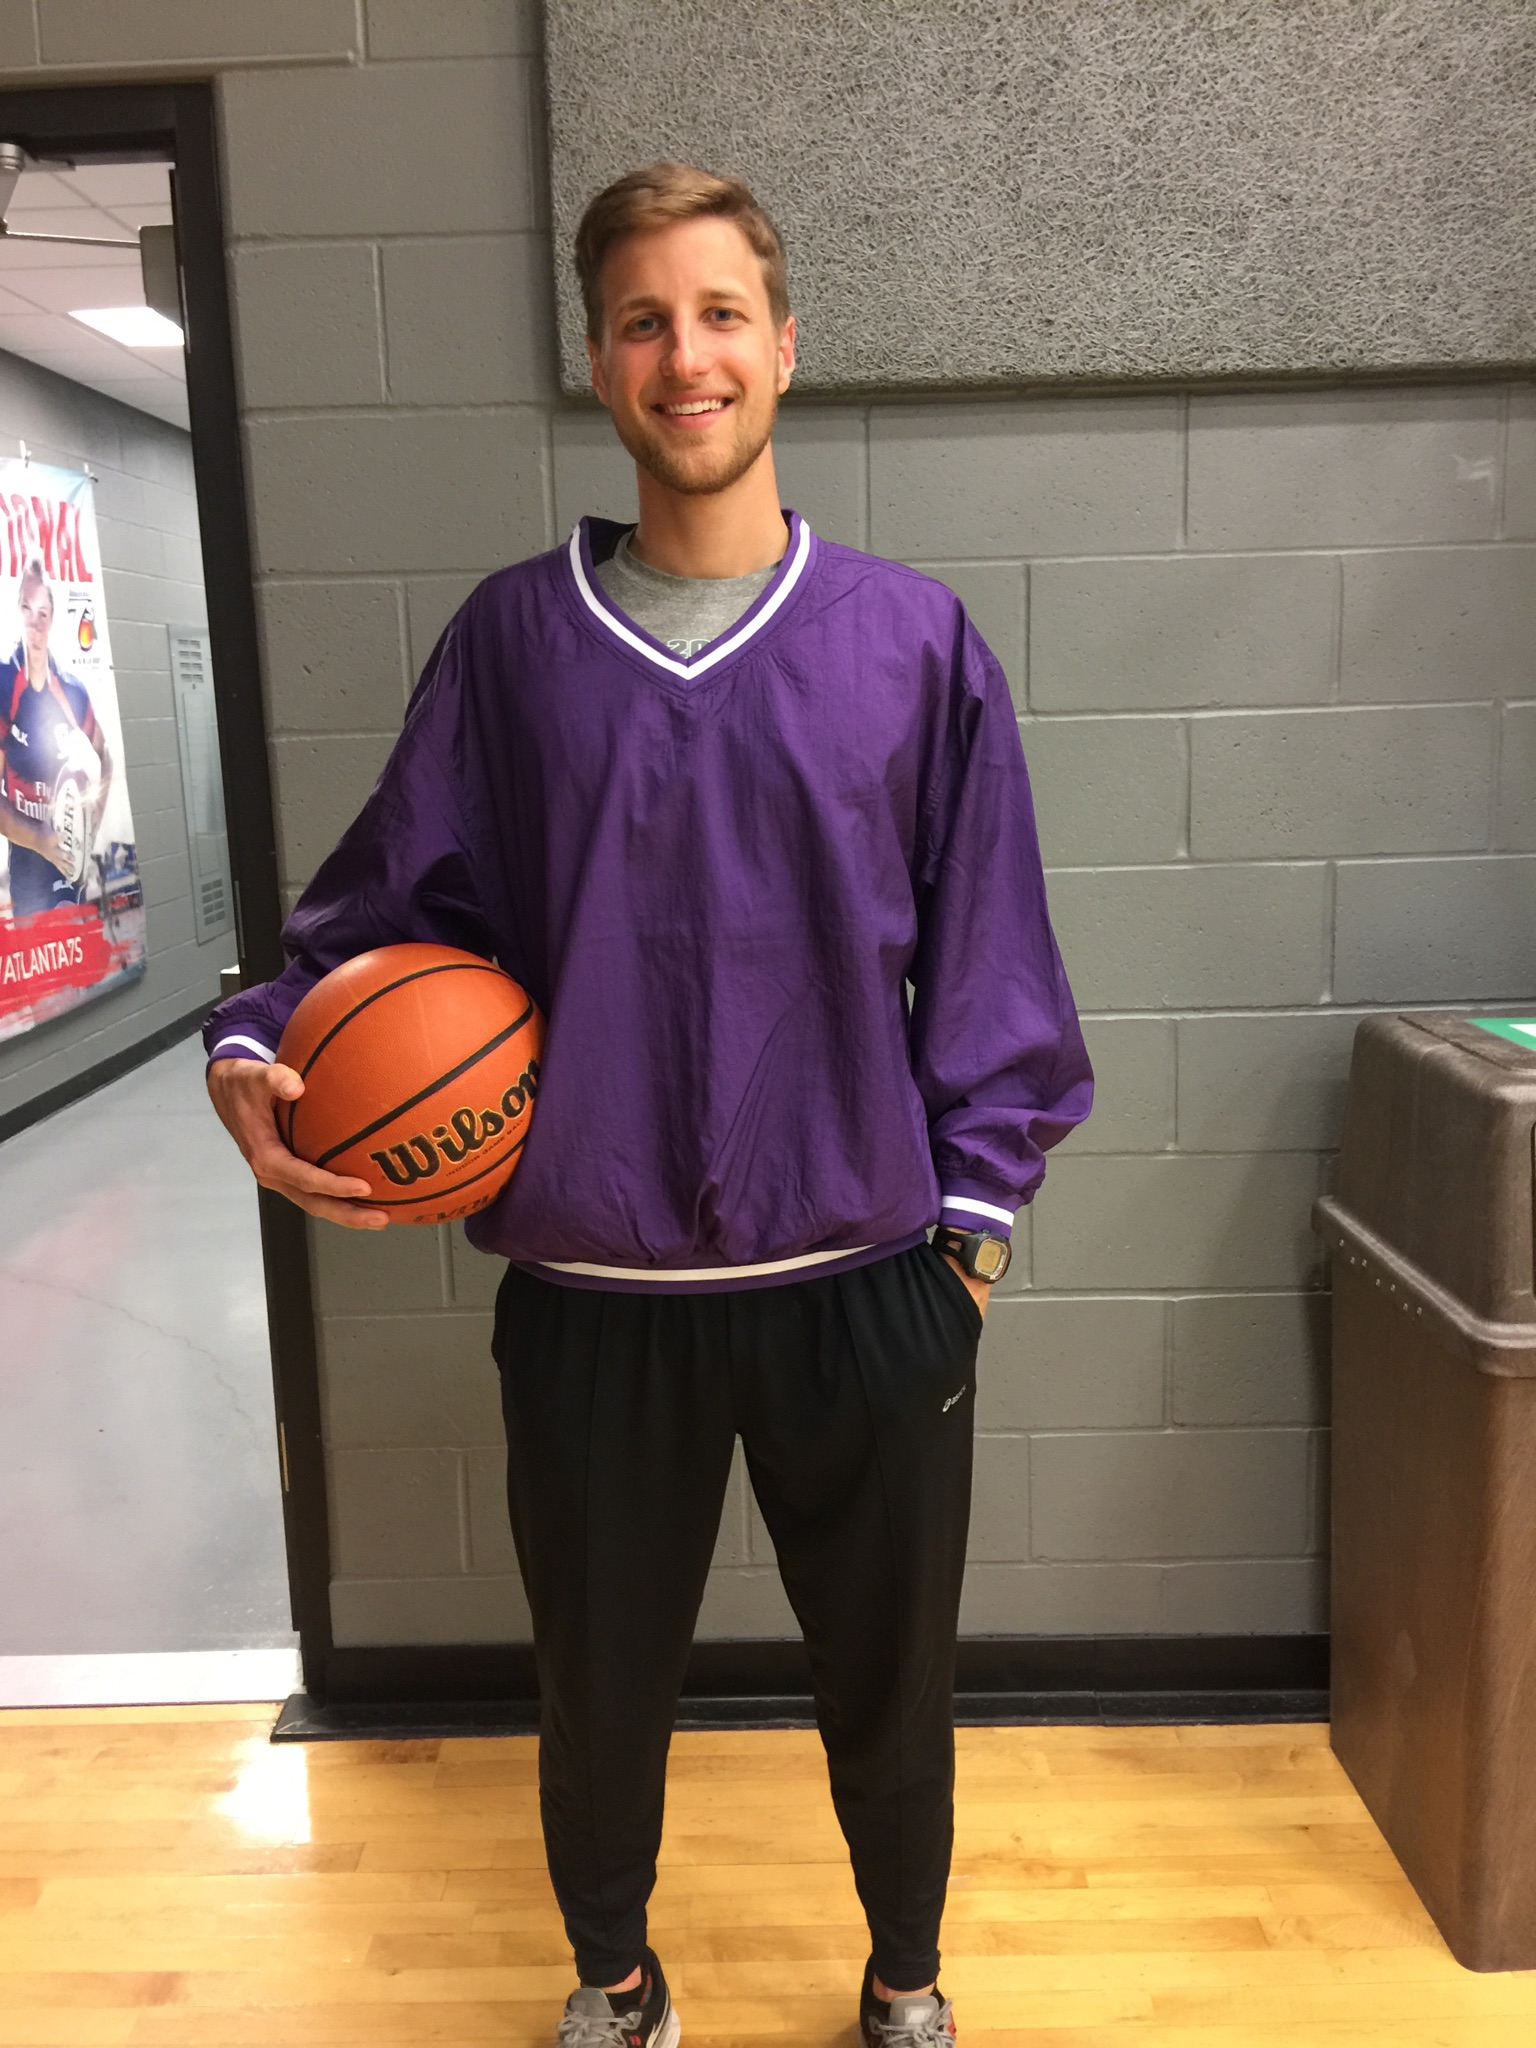 Shelbyville gains a great teacher starting next year. Tim McElroy is rocking his new purple gear, gift from cooperating teacher Denna Williams.